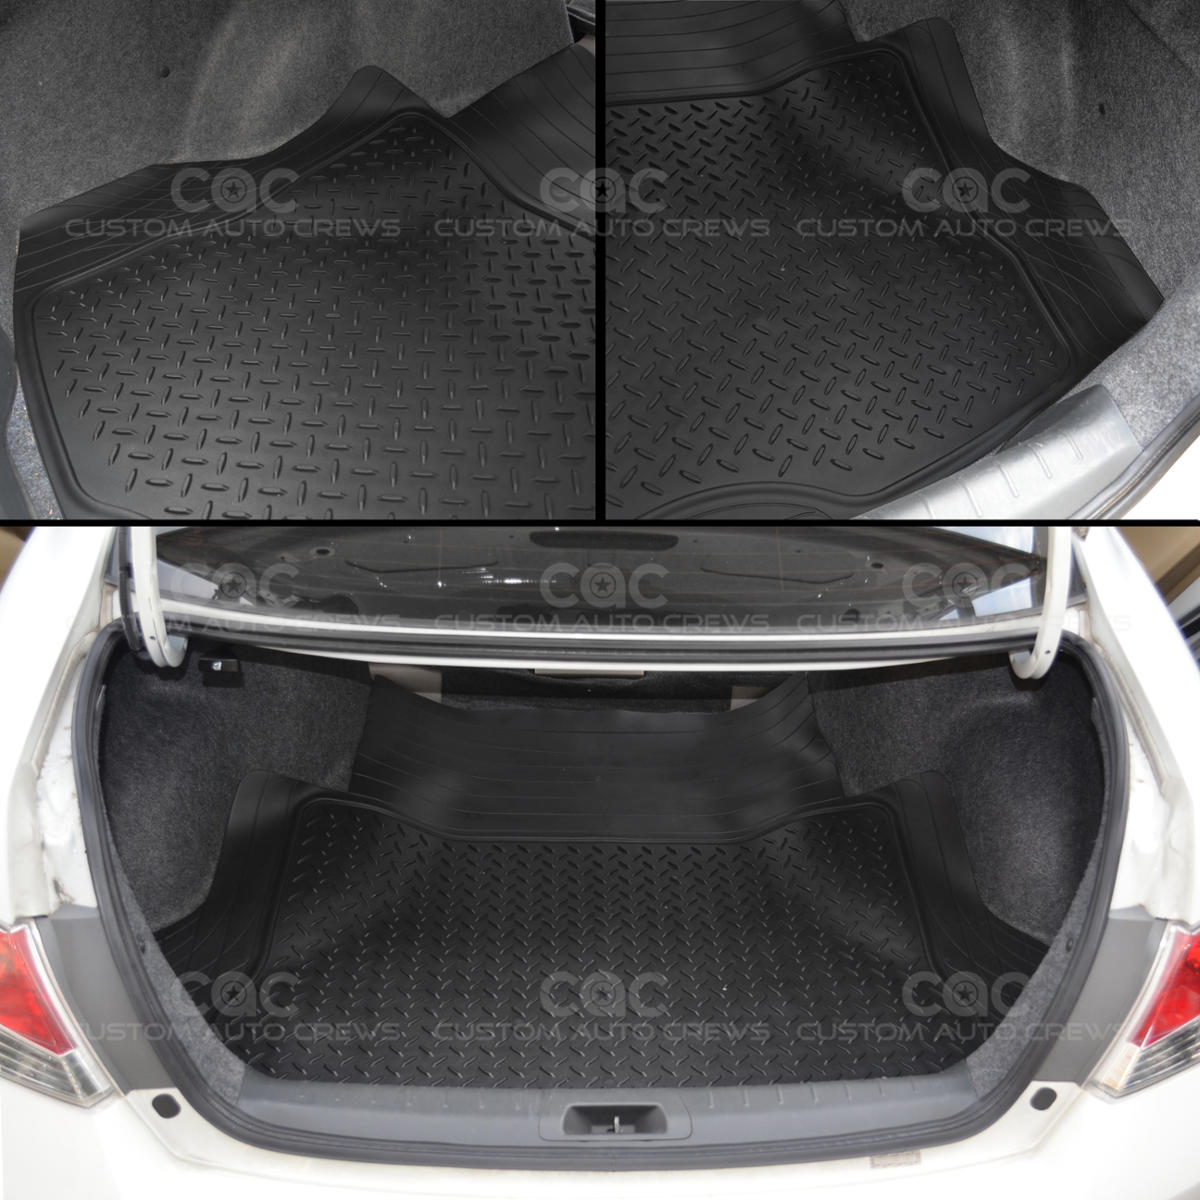 Rubber floor mats nissan rogue - Motor Trend Deep Dish Rubber Floor Mats Amp Cargo Set Black Premium 4 Piece Ebay